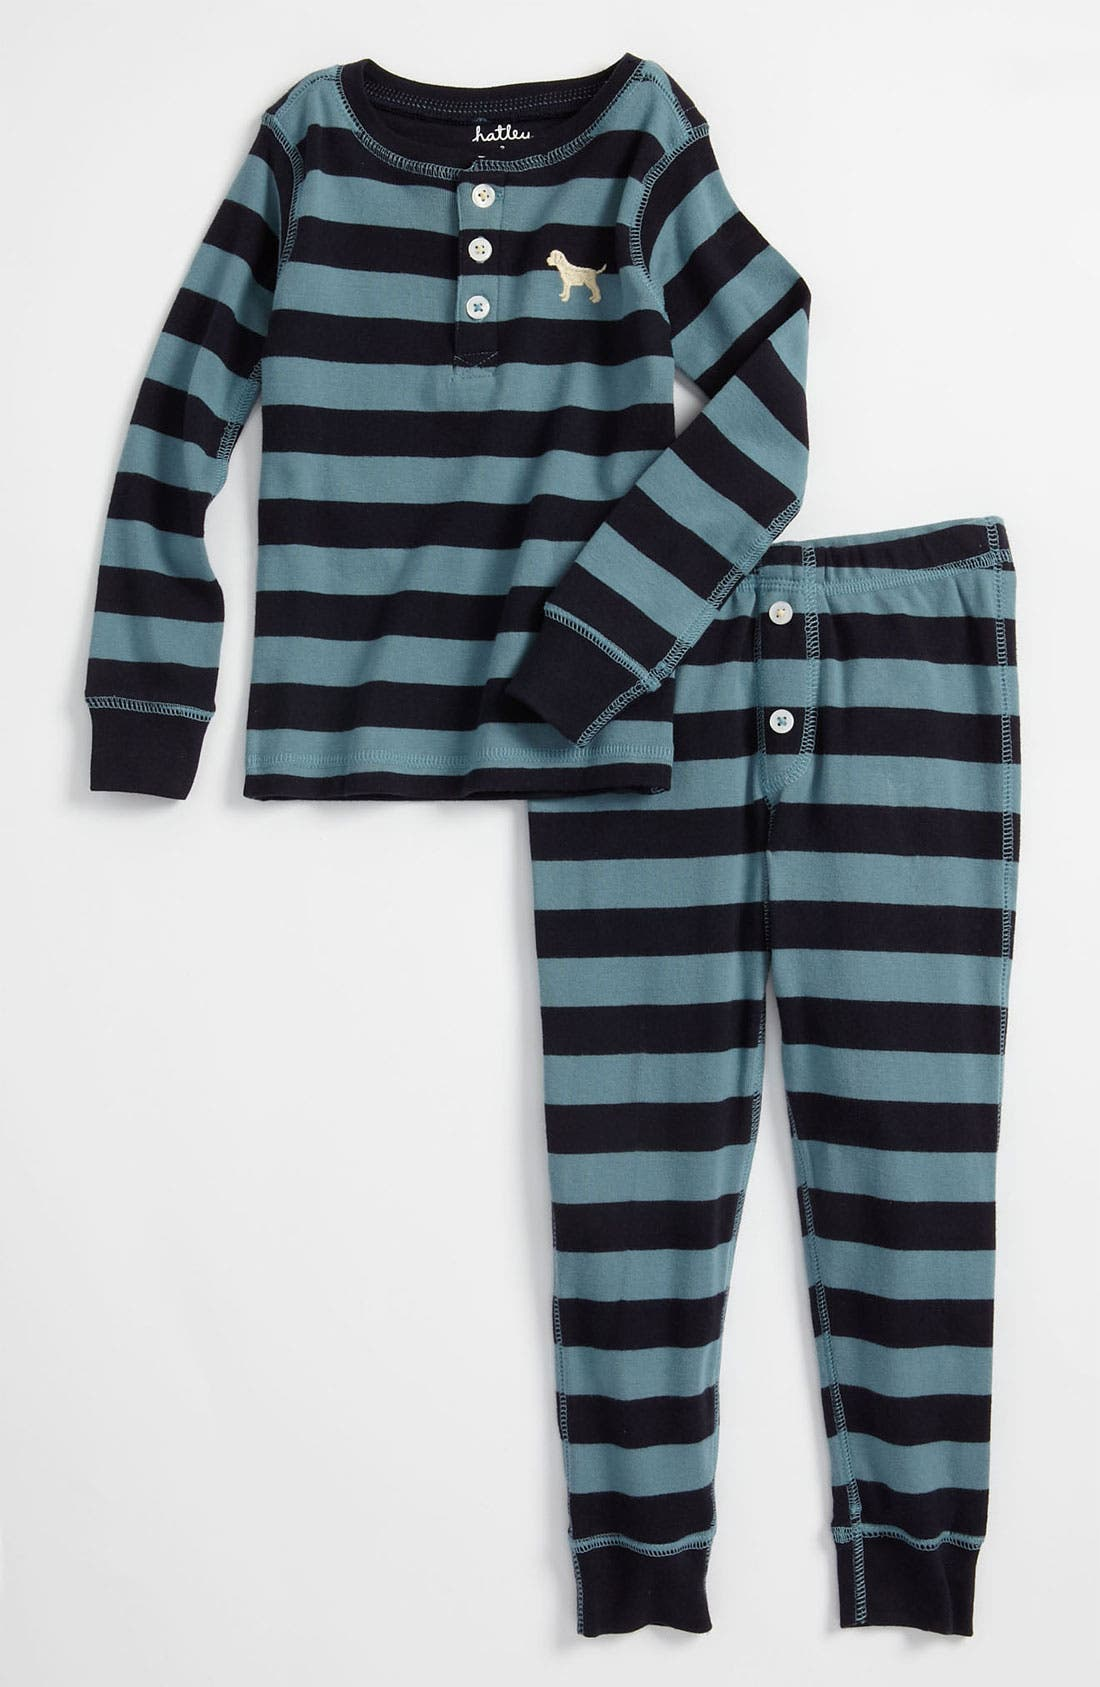 Main Image - Hatley Fitted Two Piece Pajamas (Toddler)